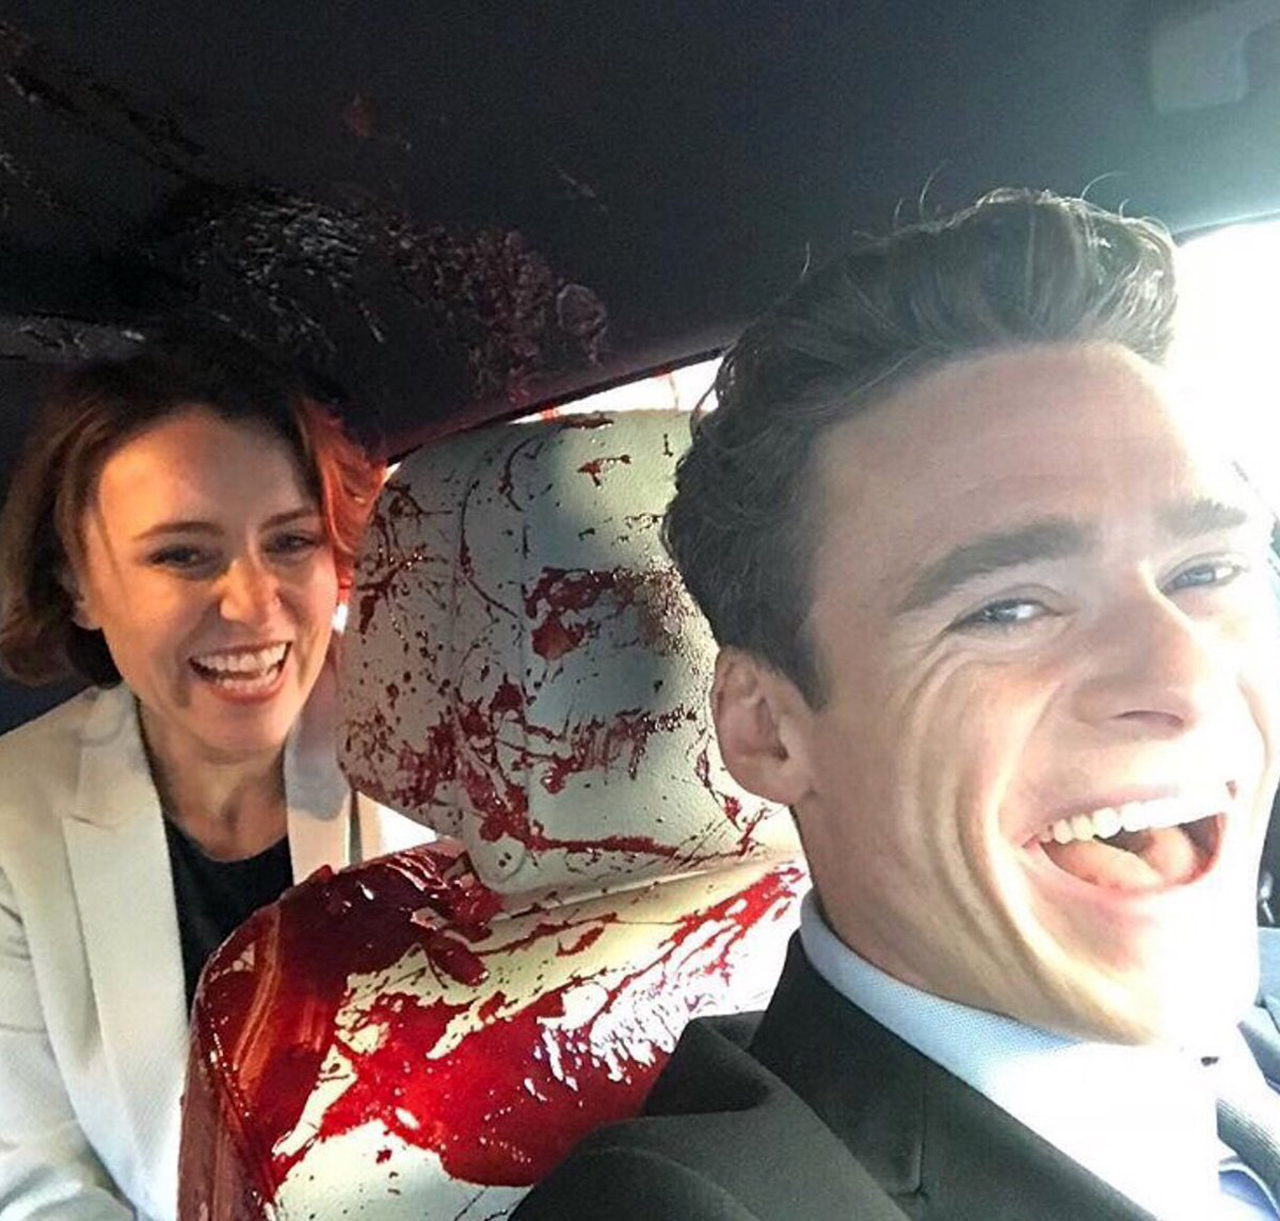 Keeley Hawes and Richard Madden bloody car seat